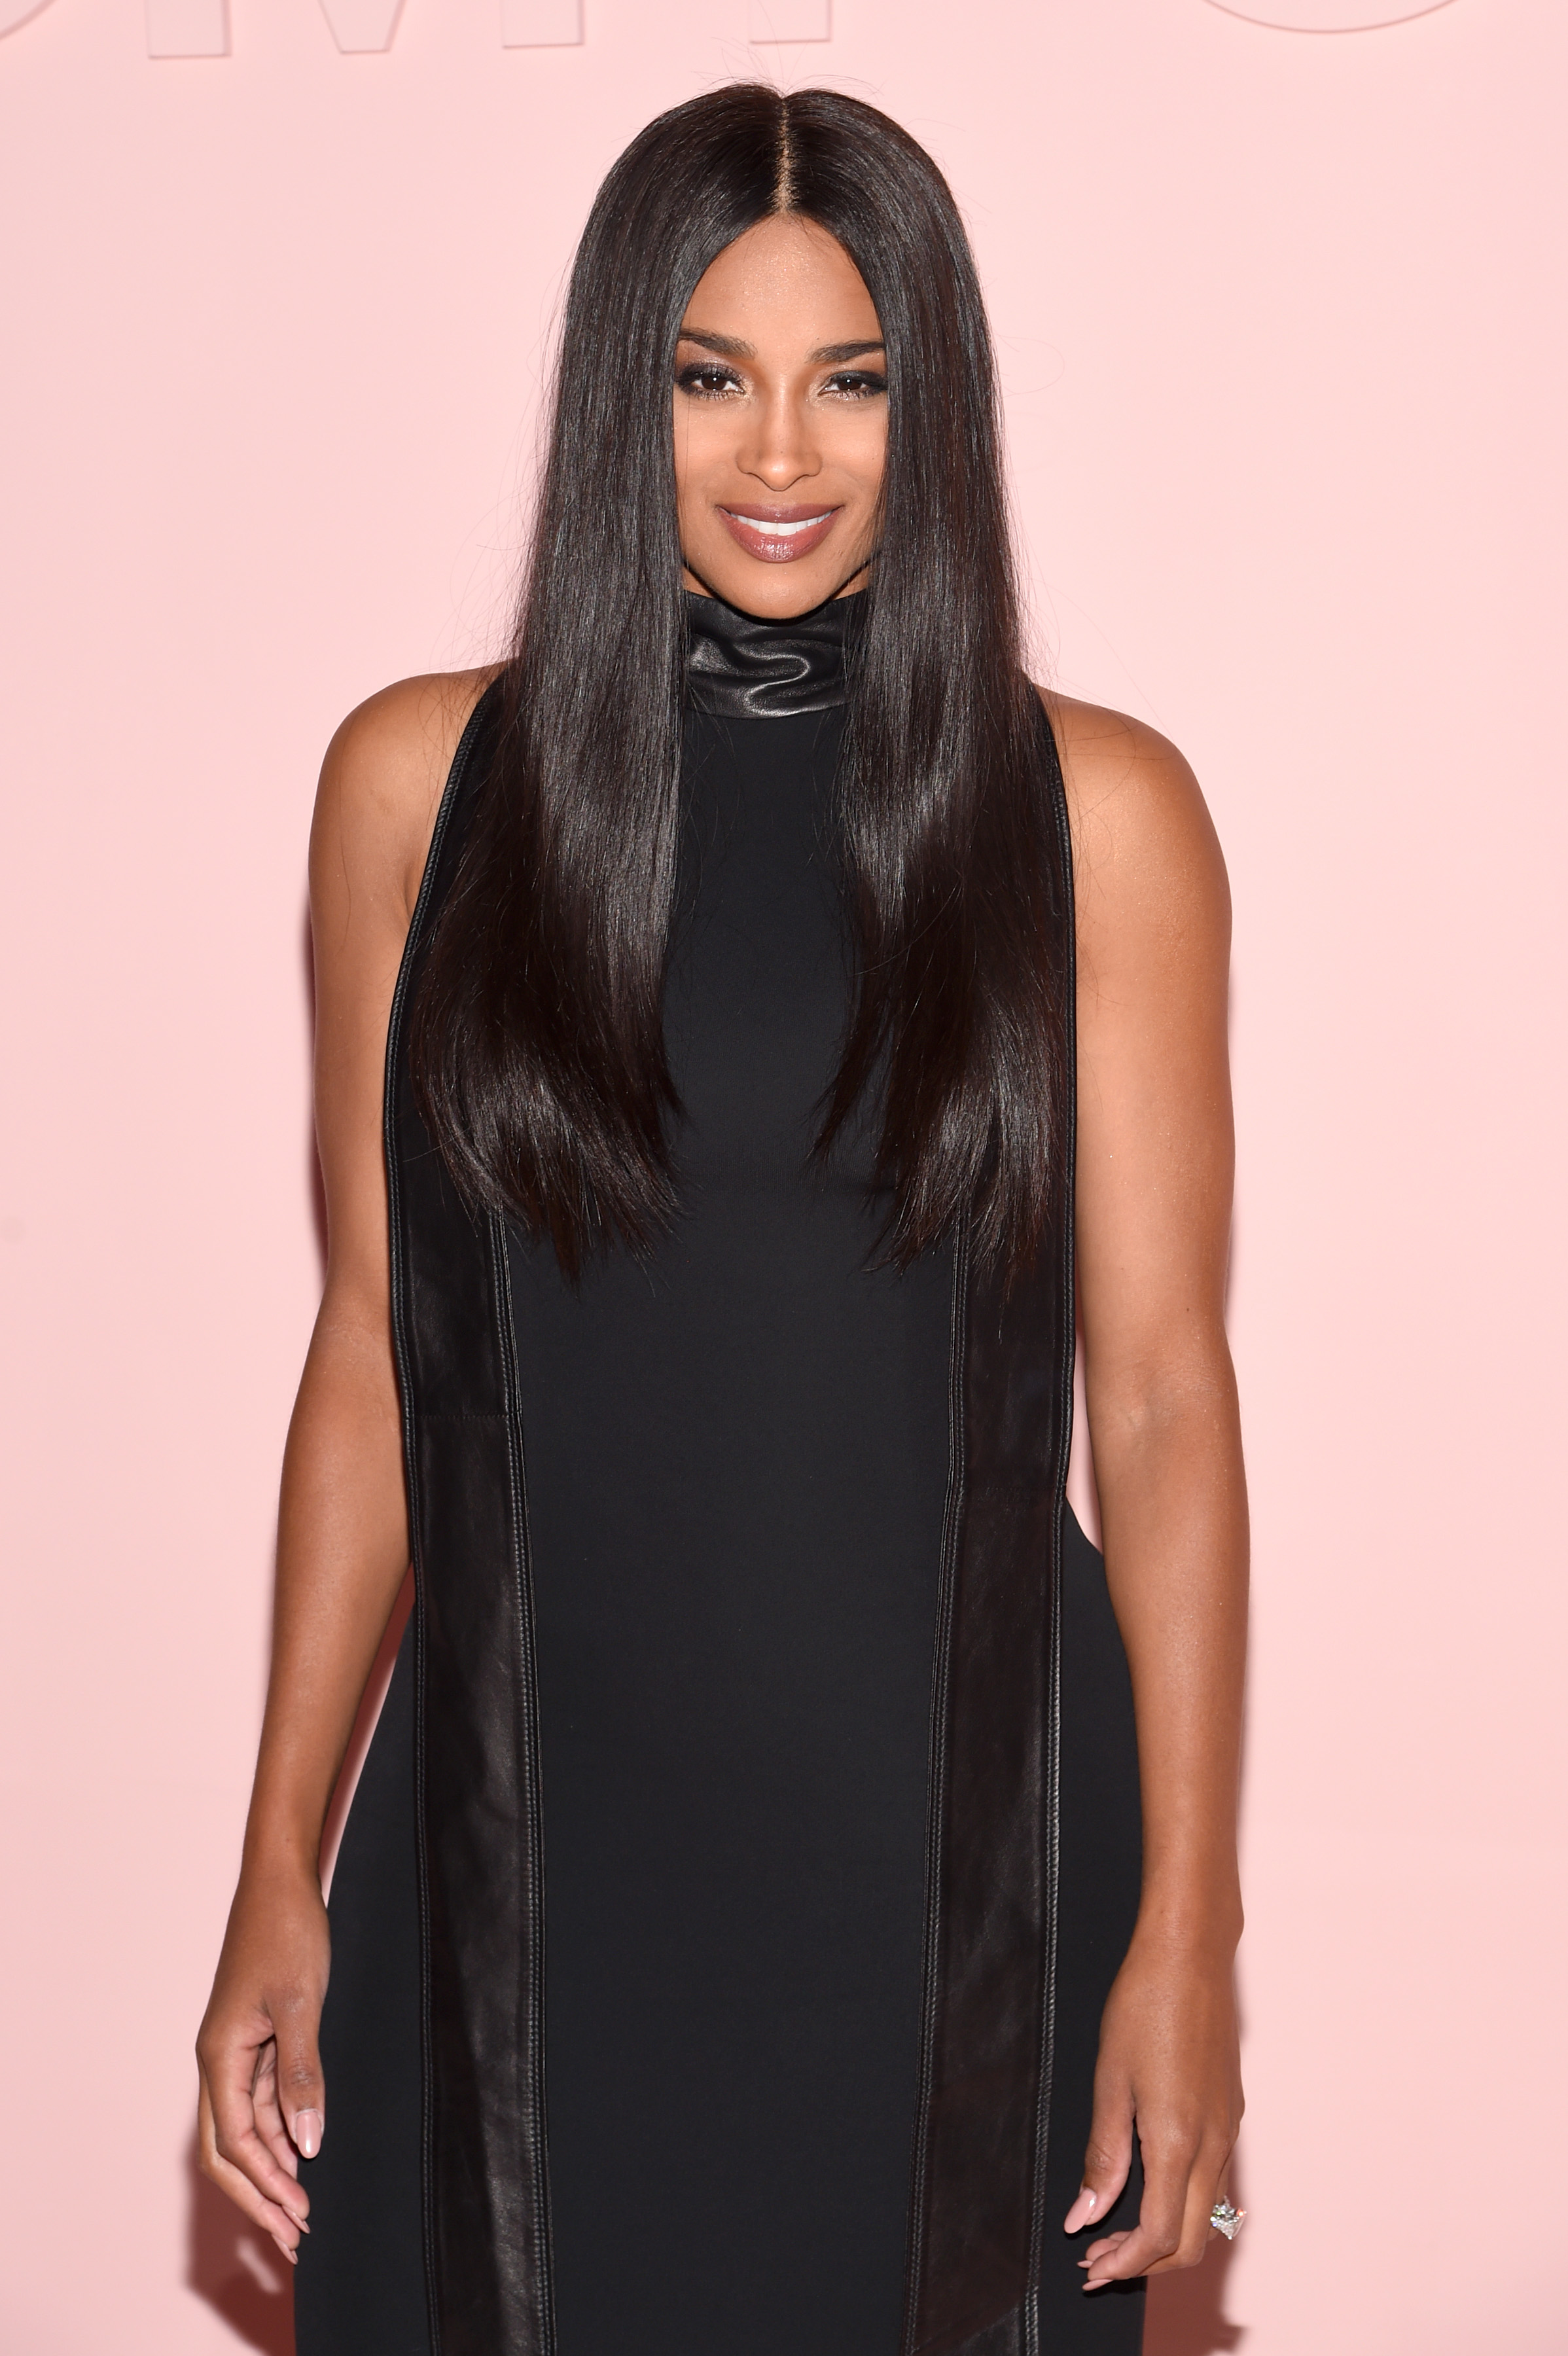 Ciara shows off svelte figure with a long body-hugging dress in her first red carpet appearance since giving birth to daughter, Sienna.